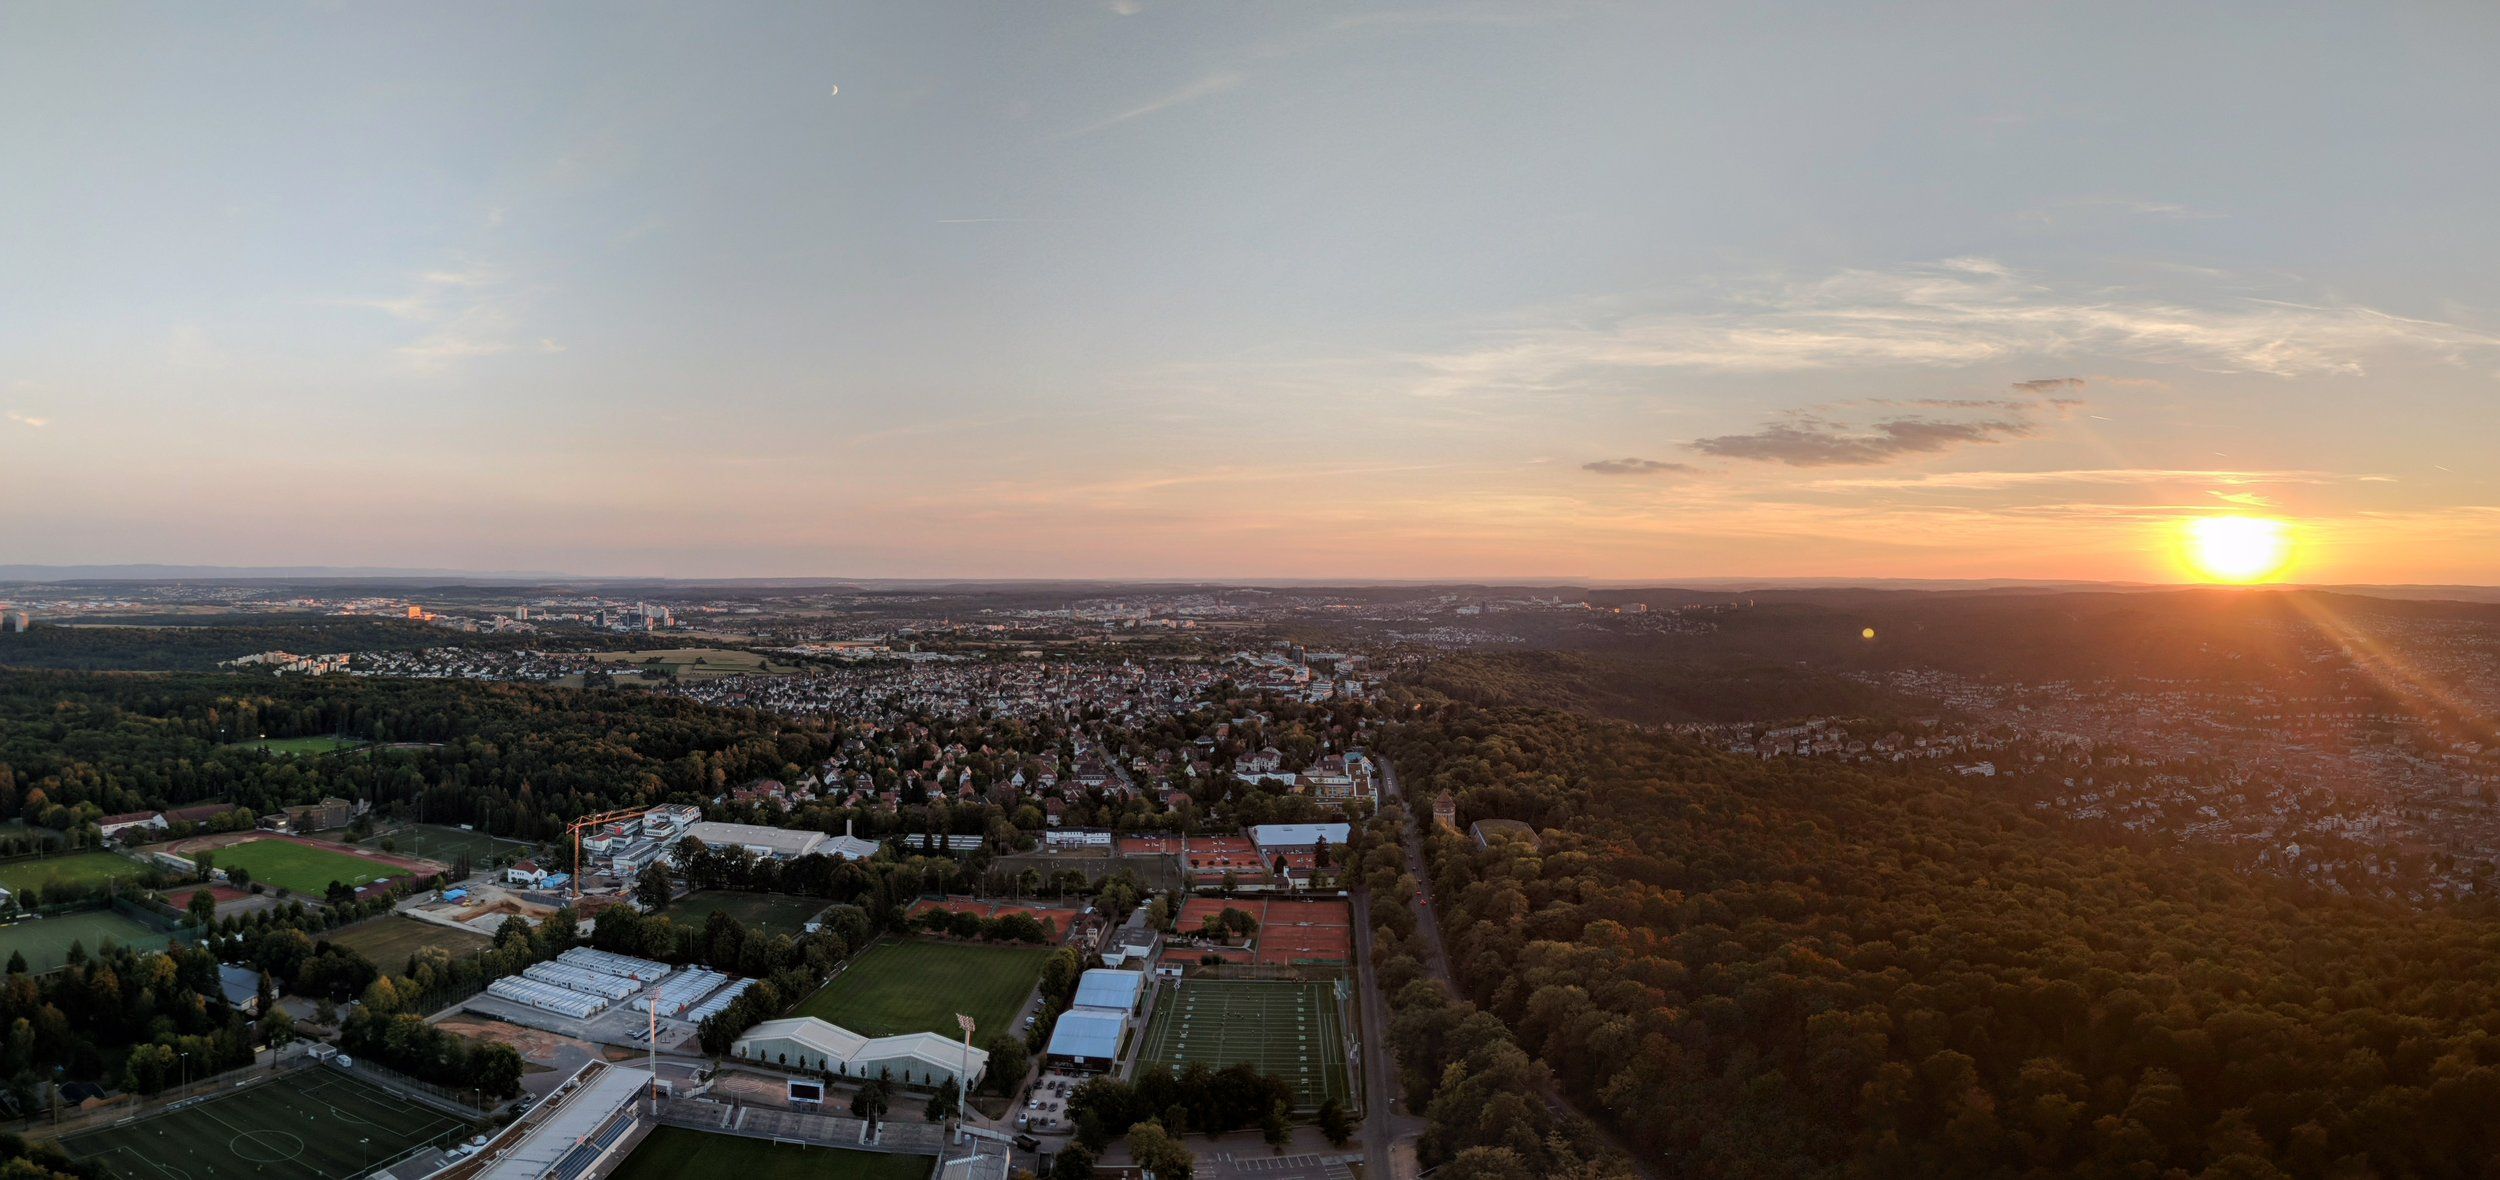 Stuttgart, Germany - As seen from the top of the Fernsehturm (TV tower) at sunset